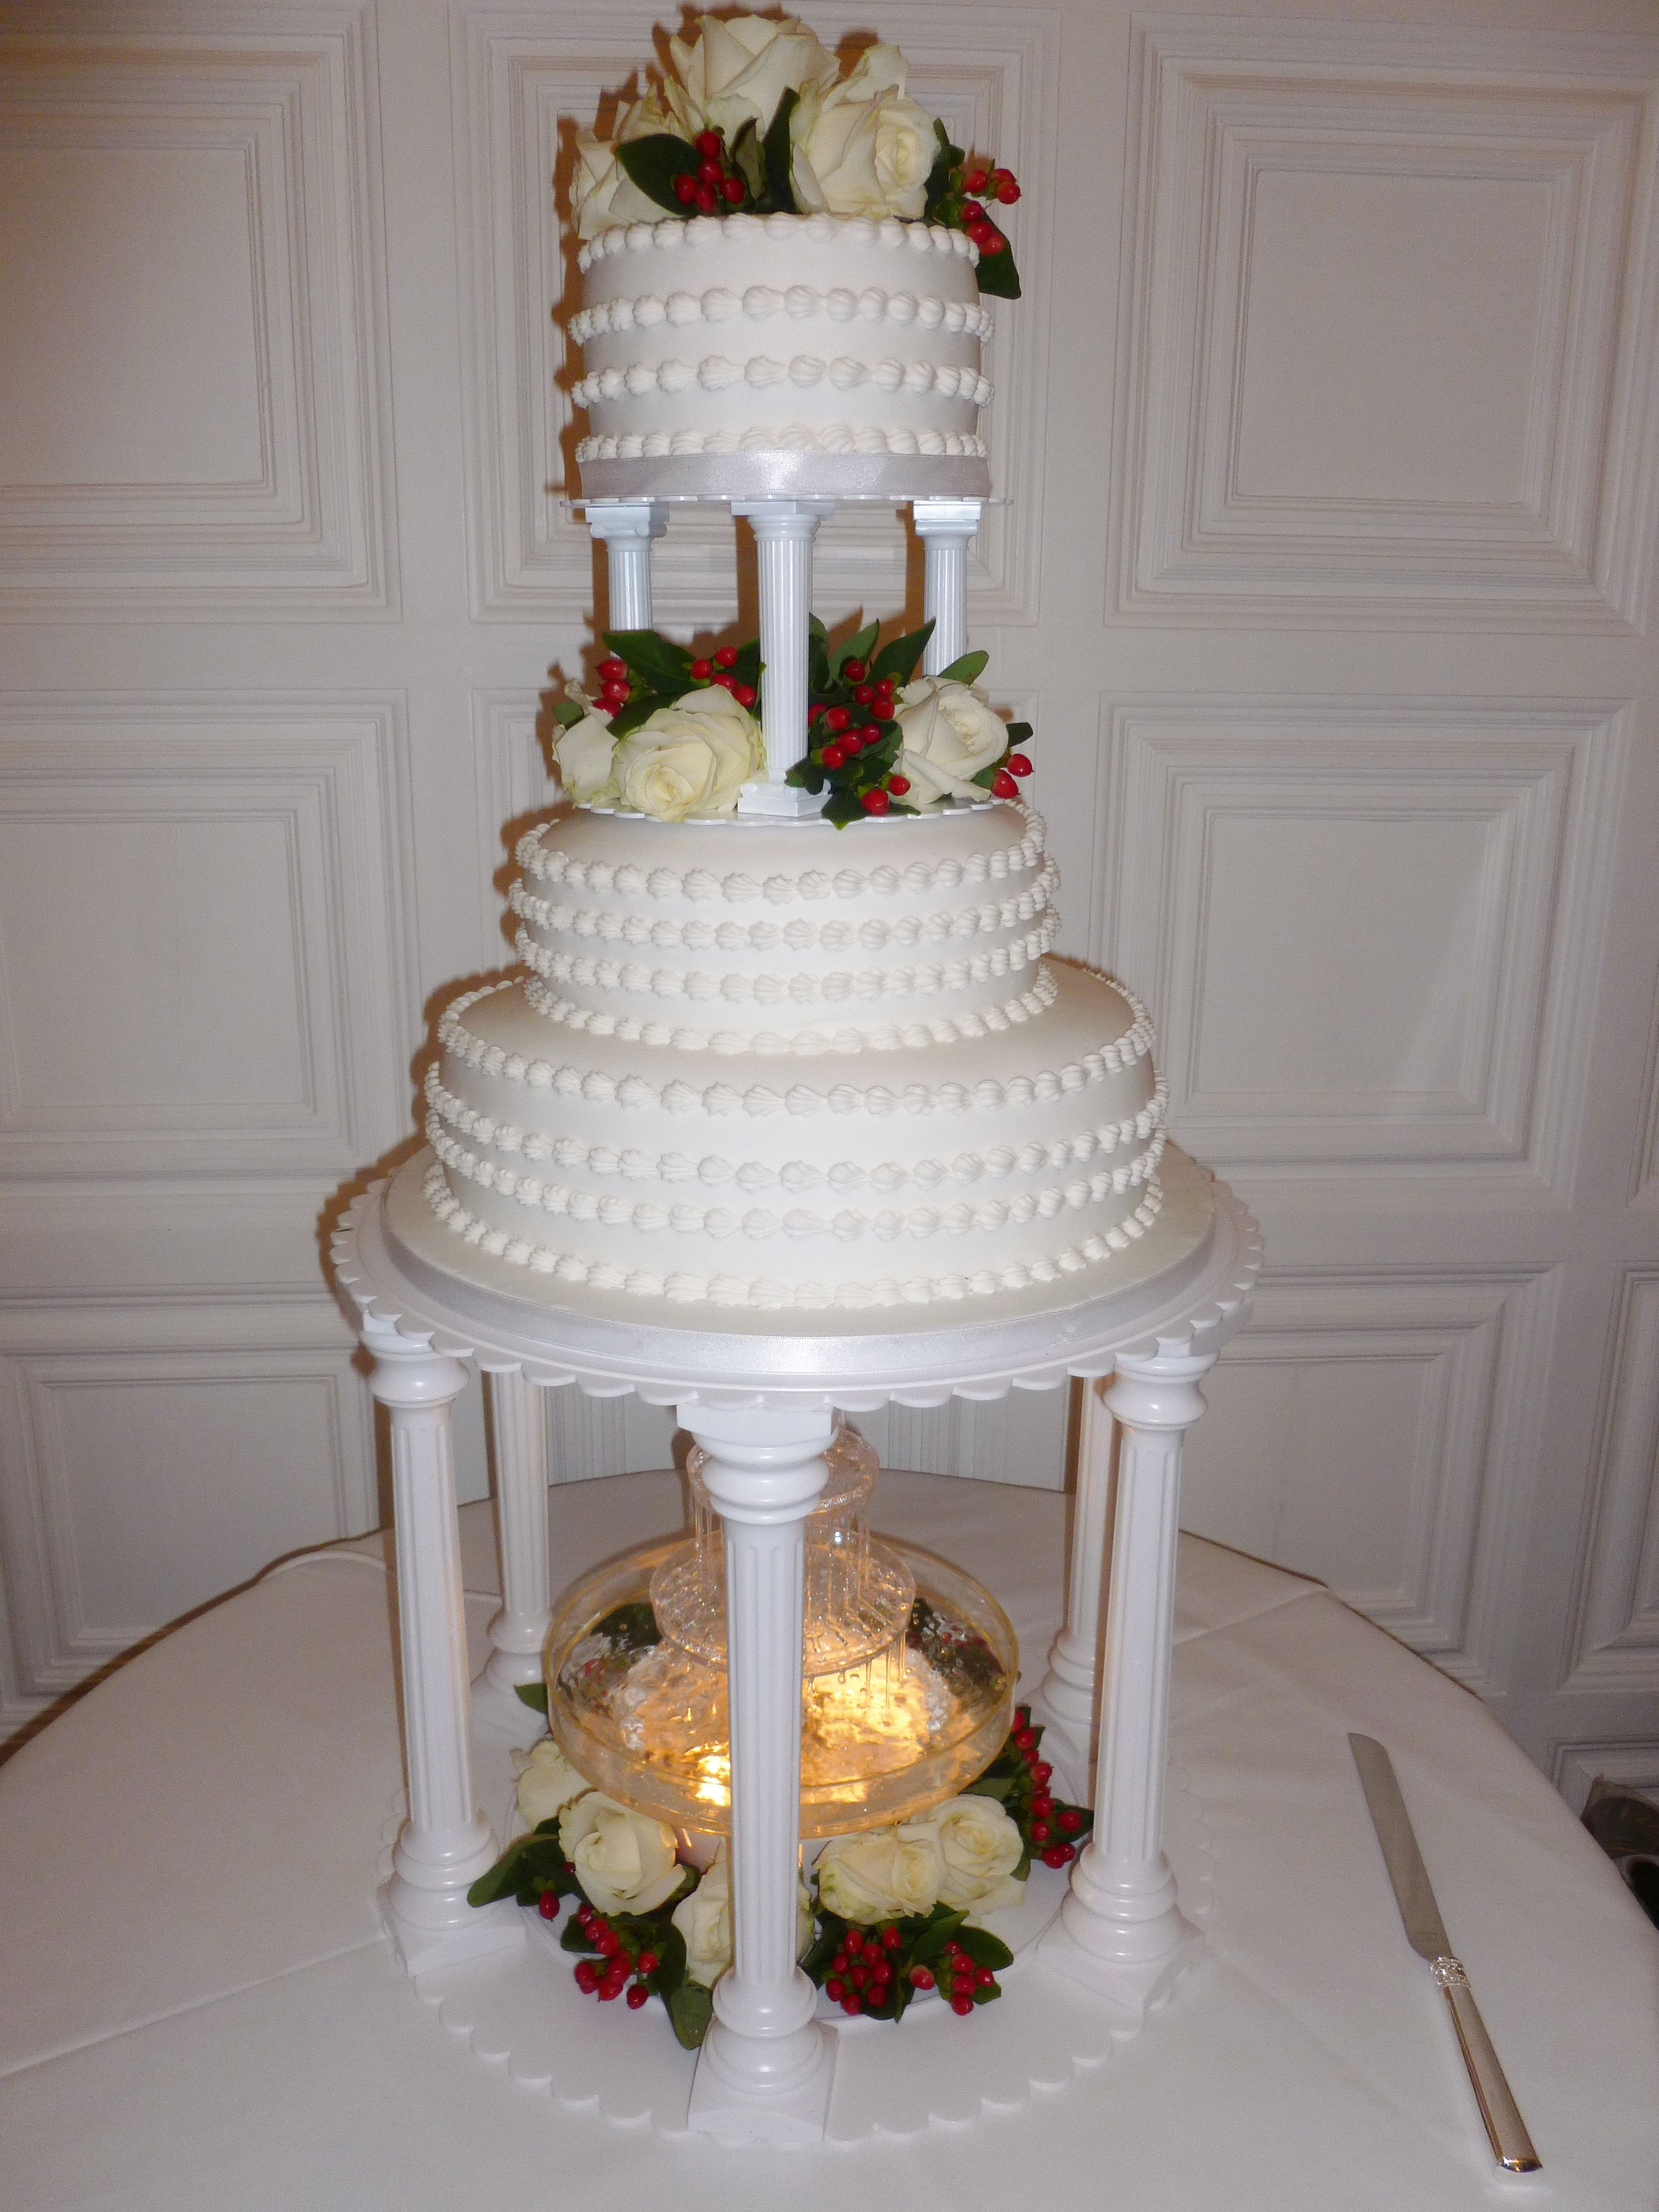 3 Tiered Iced Wedding Cake Using Wilton Color Glow Water Fountain Quite Lovely And Ornate